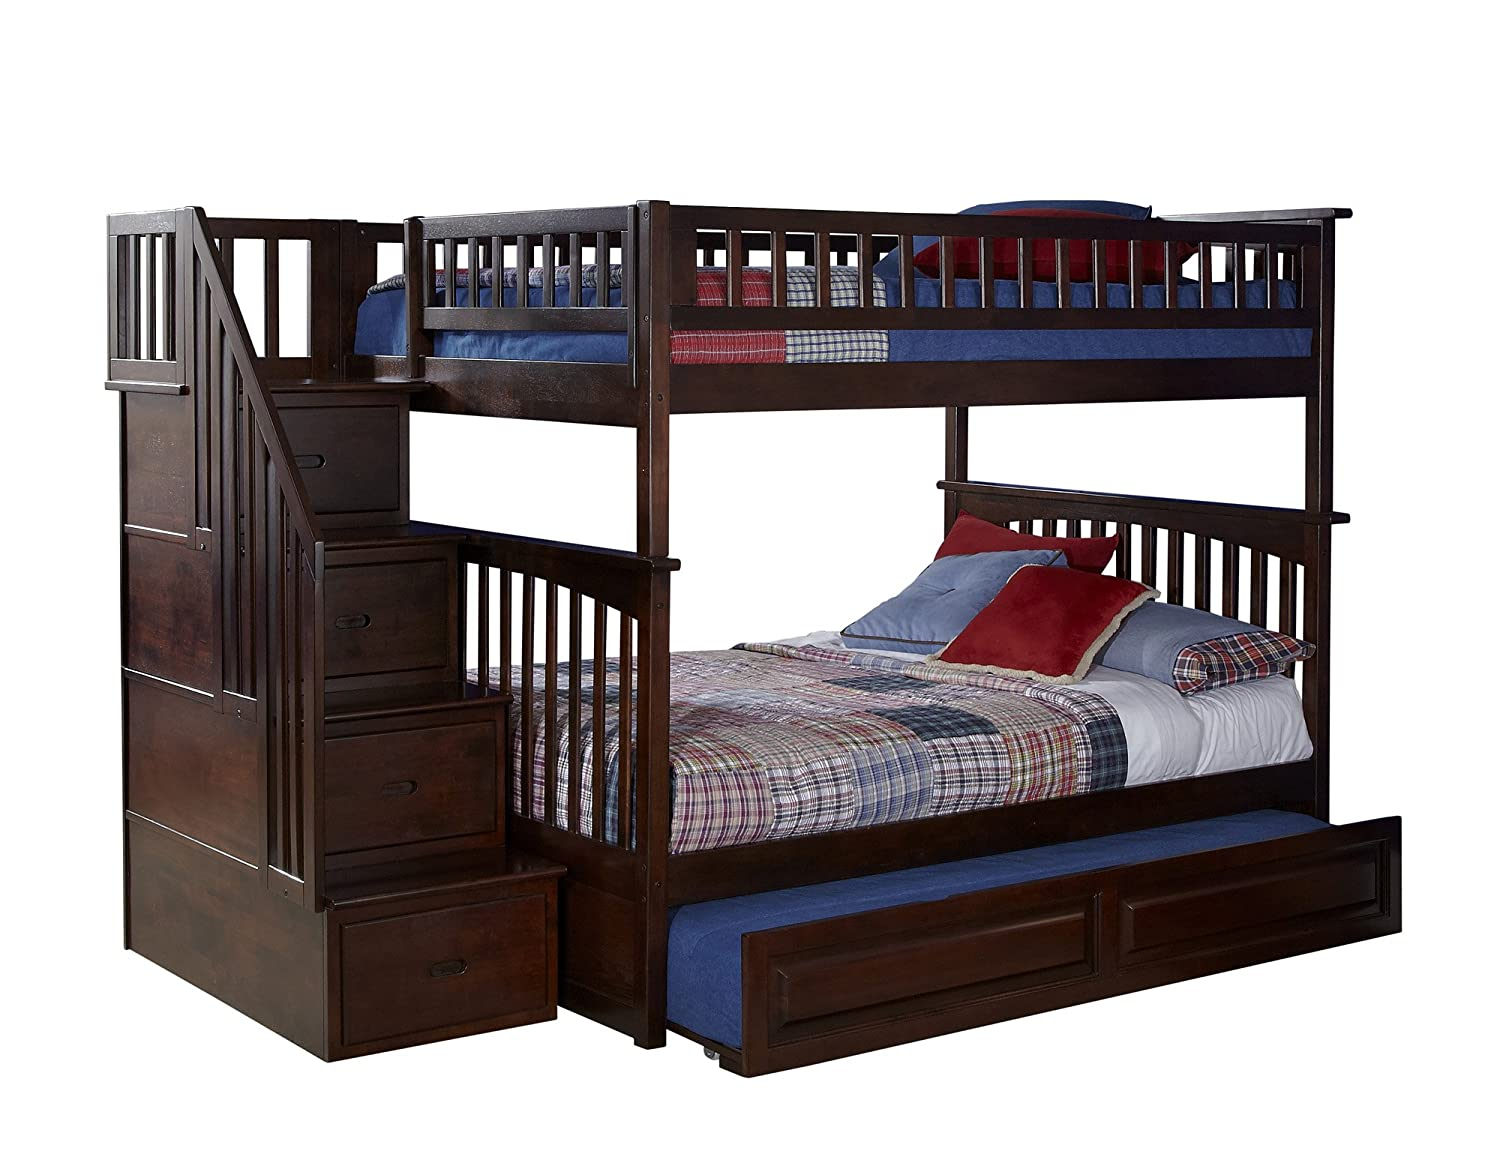 Amazon.com: Atlantic Furniture Columbia Staircase Bunk Bed With Trundle  Bed, Full Over Full, Antique Walnut: Kitchen U0026 Dining